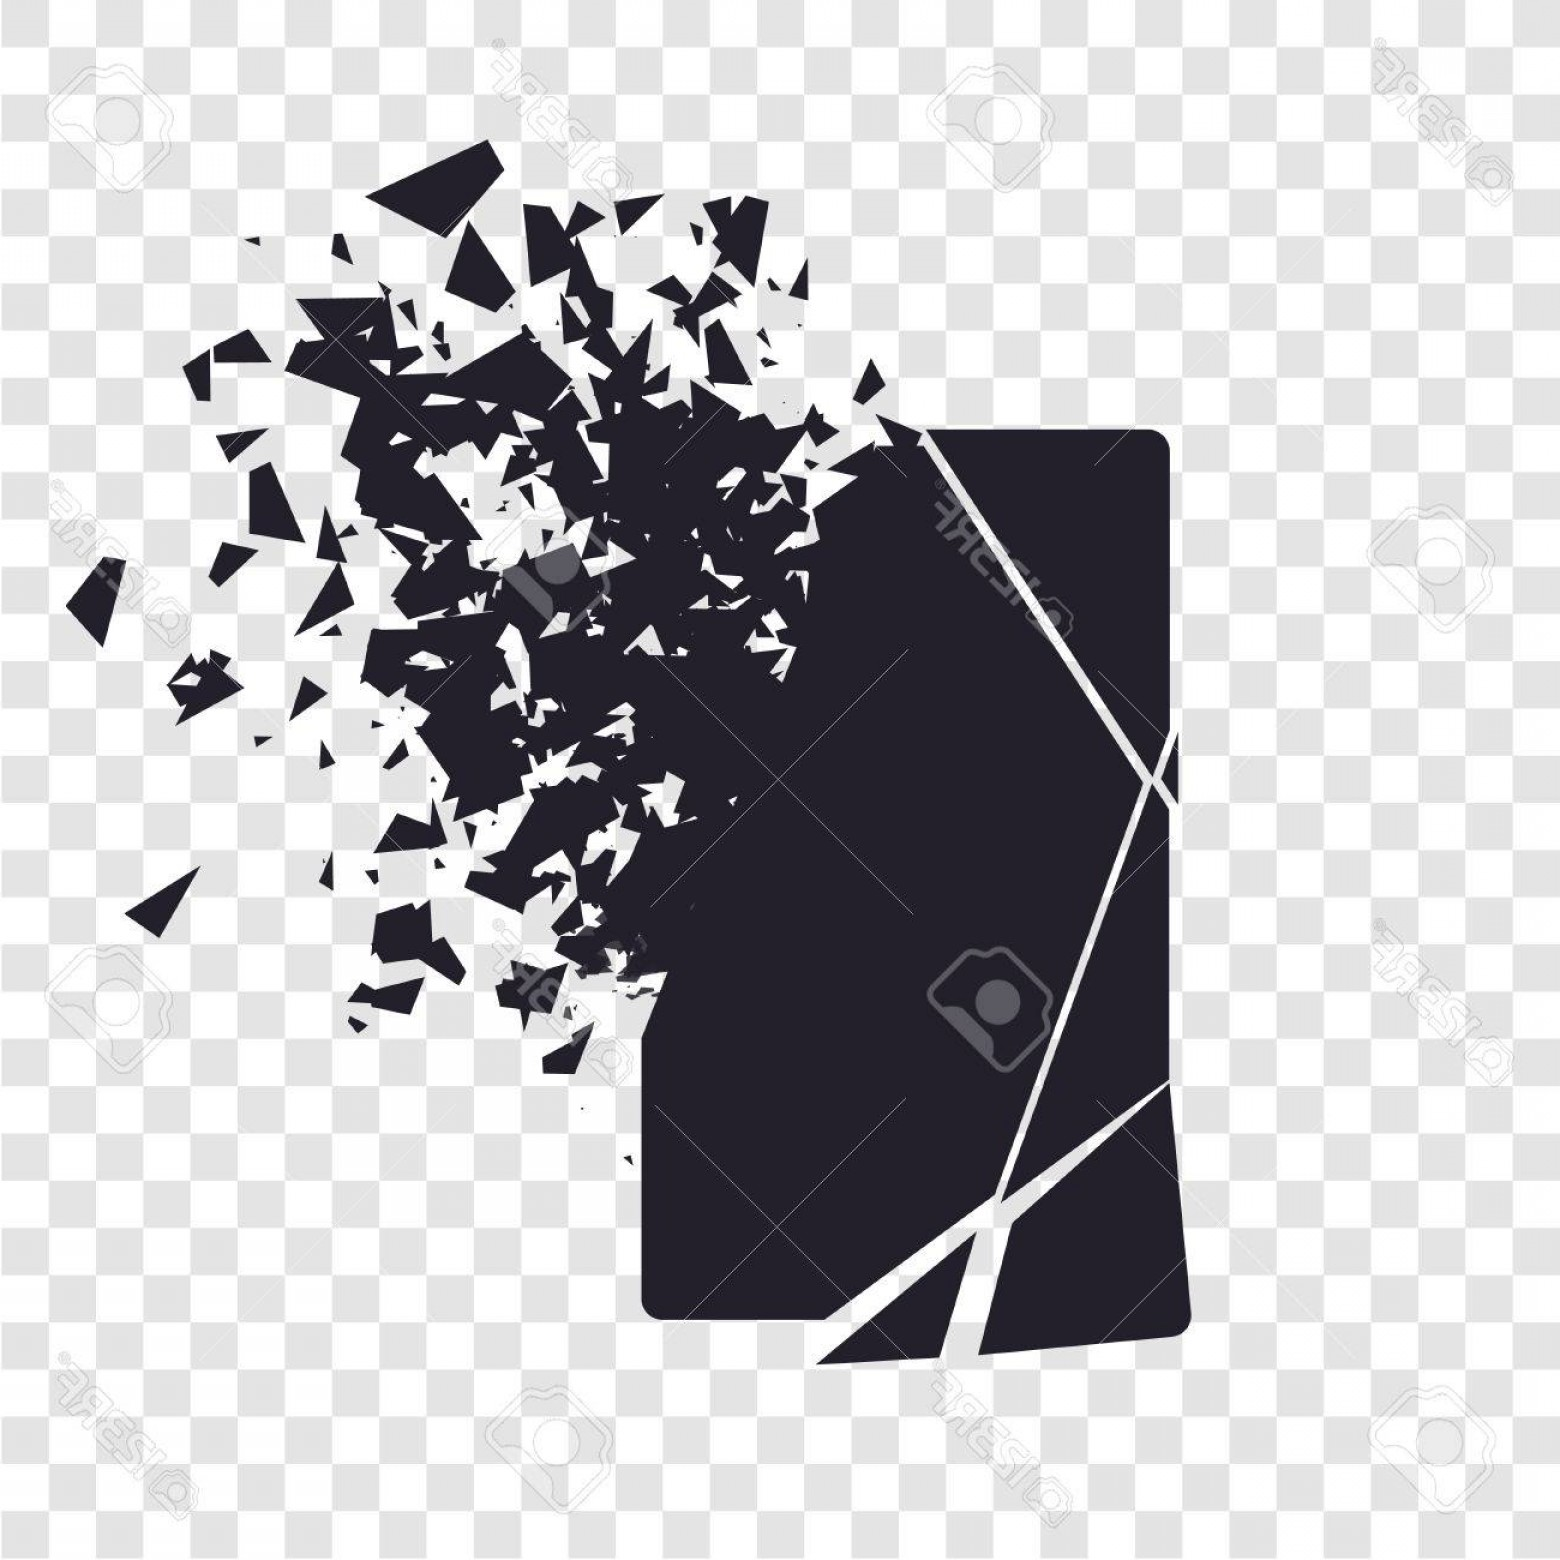 Vector Broken Pieces: Photostock Vector Cracked Phone Screen Shatters Into Pieces Broken Smartphone Split By The Explosion Display Of The Ph